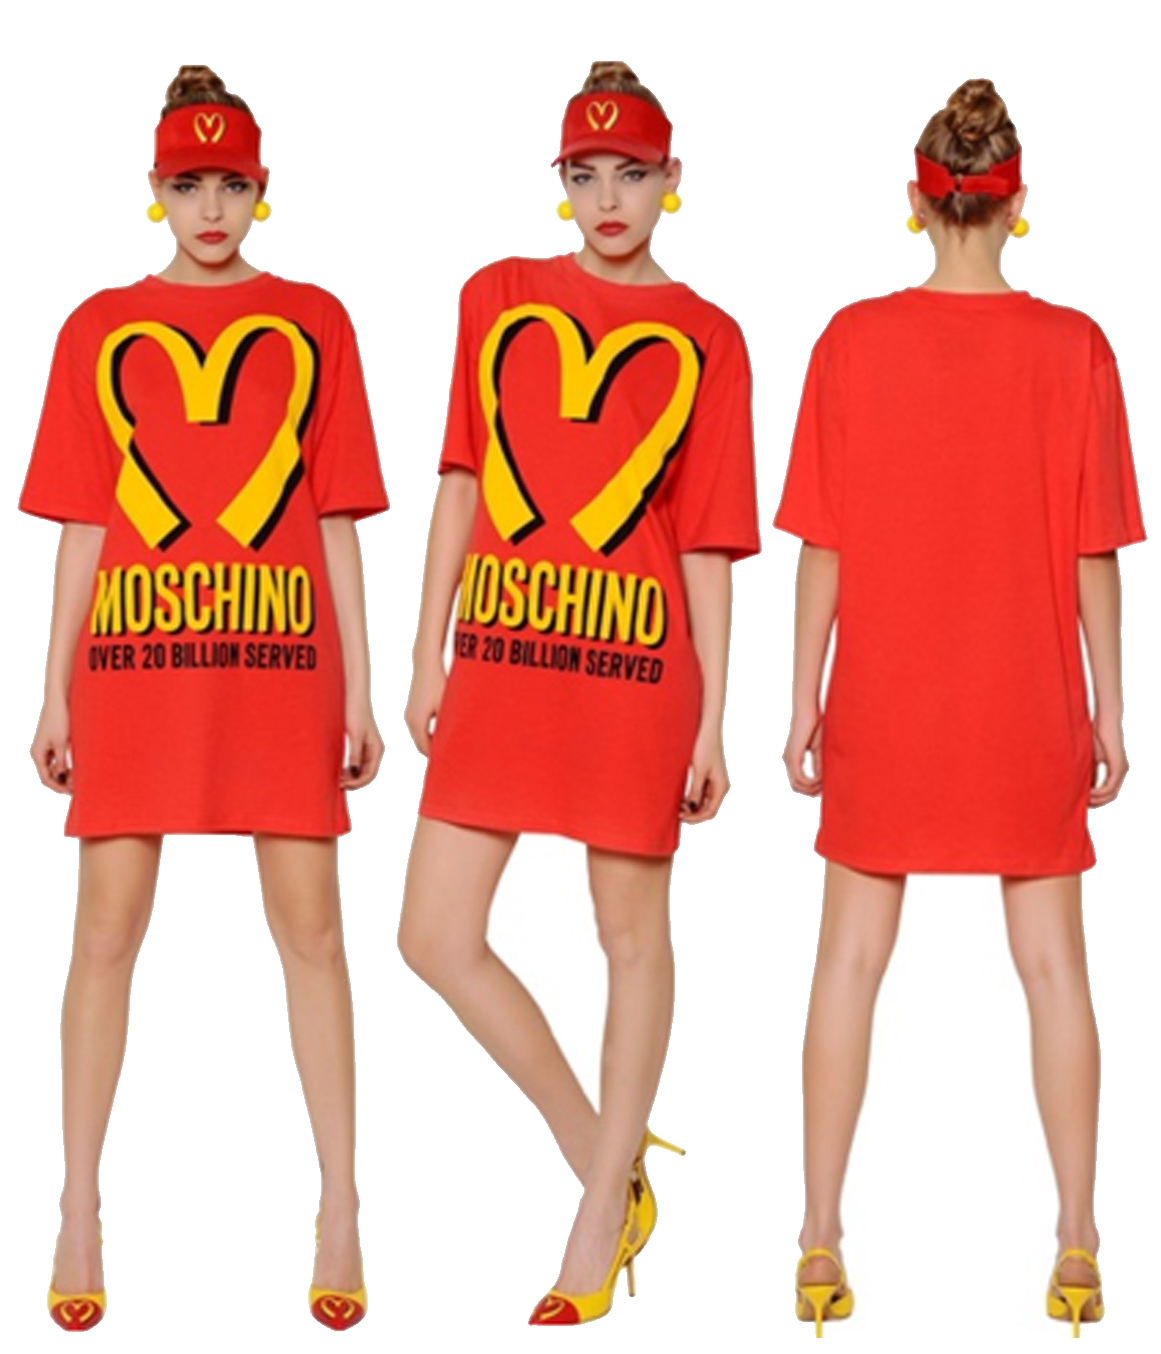 Moschino1 Hire Moschino dresses now at Girl Meets Dress